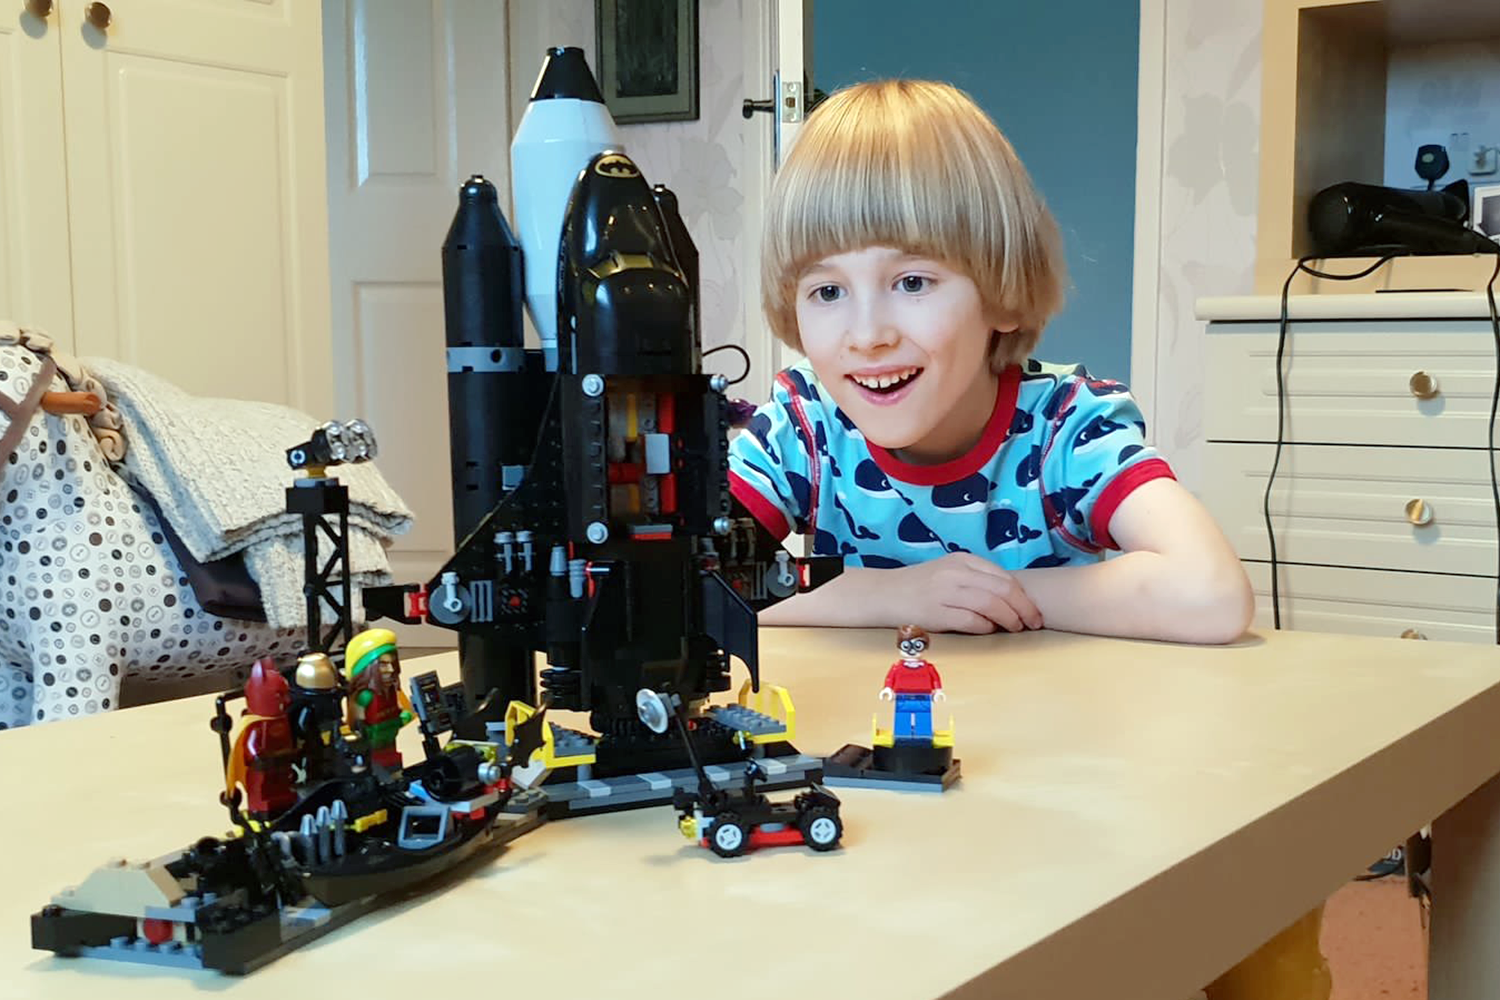 Toby with his completed Lego Batman set